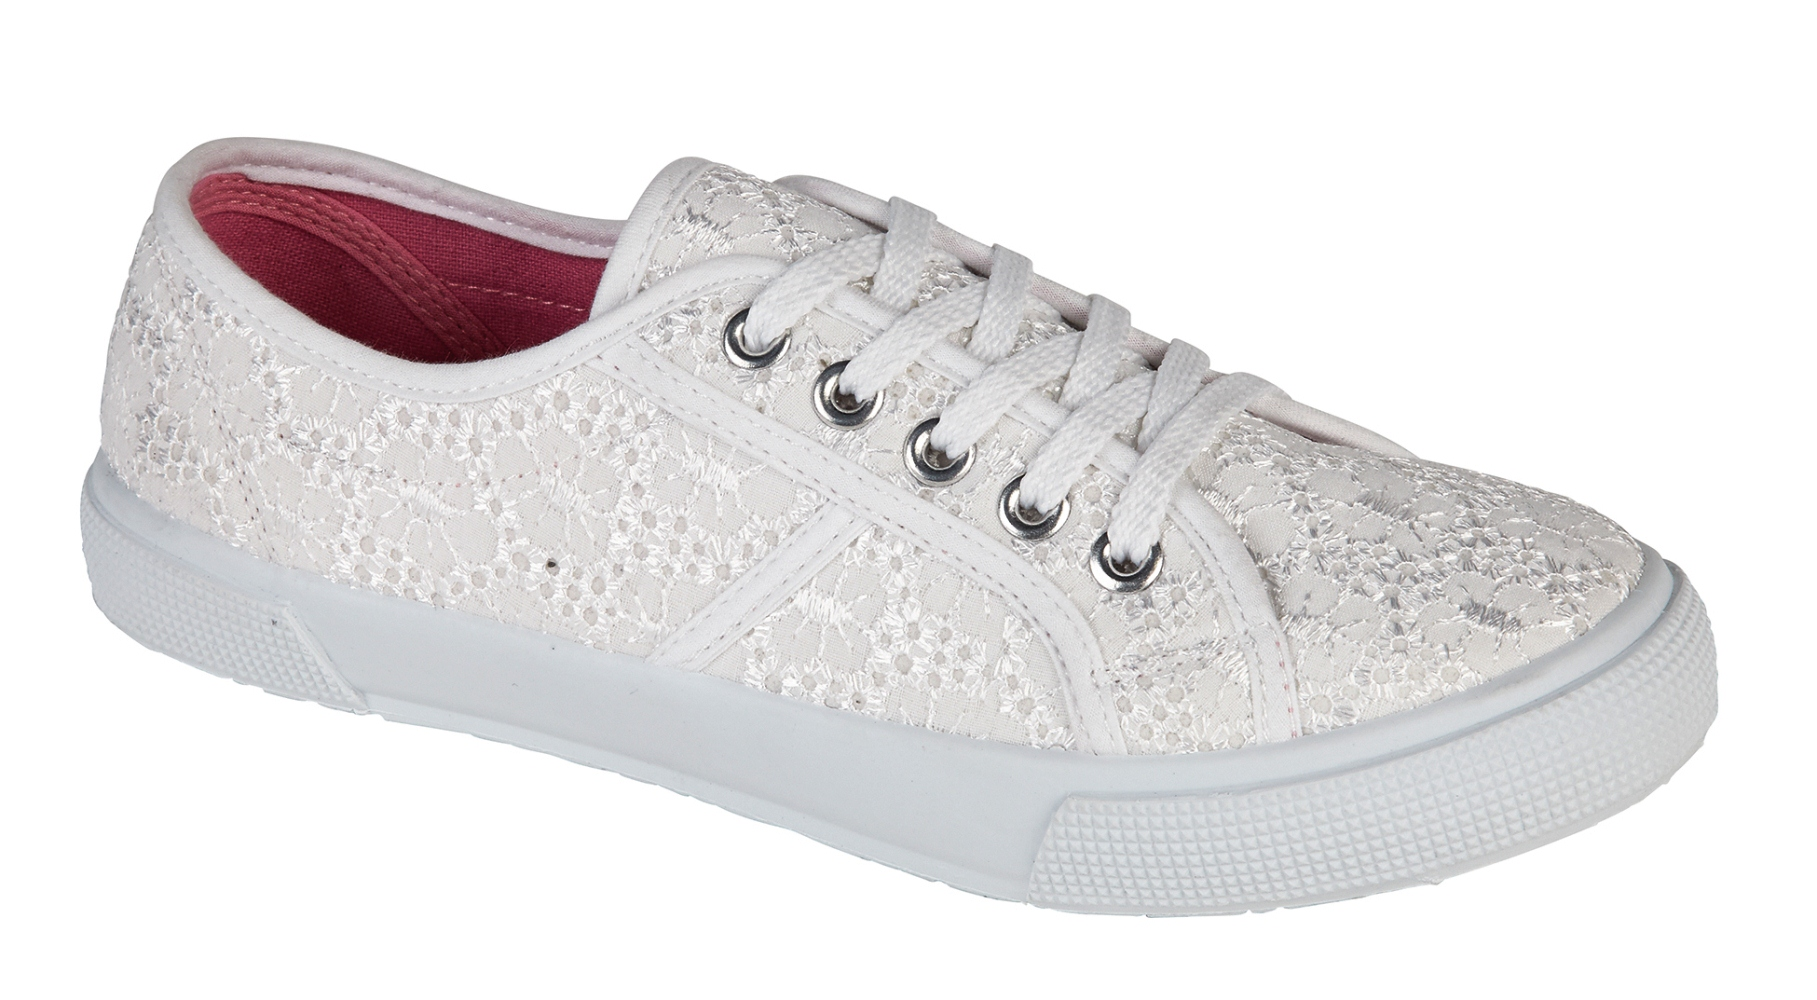 Discover women's trainers with ASOS. From trainers to plimsolls and retro styles, ASOS offers a great alternative to a smart pair of shoes. Shop now at ASOS.